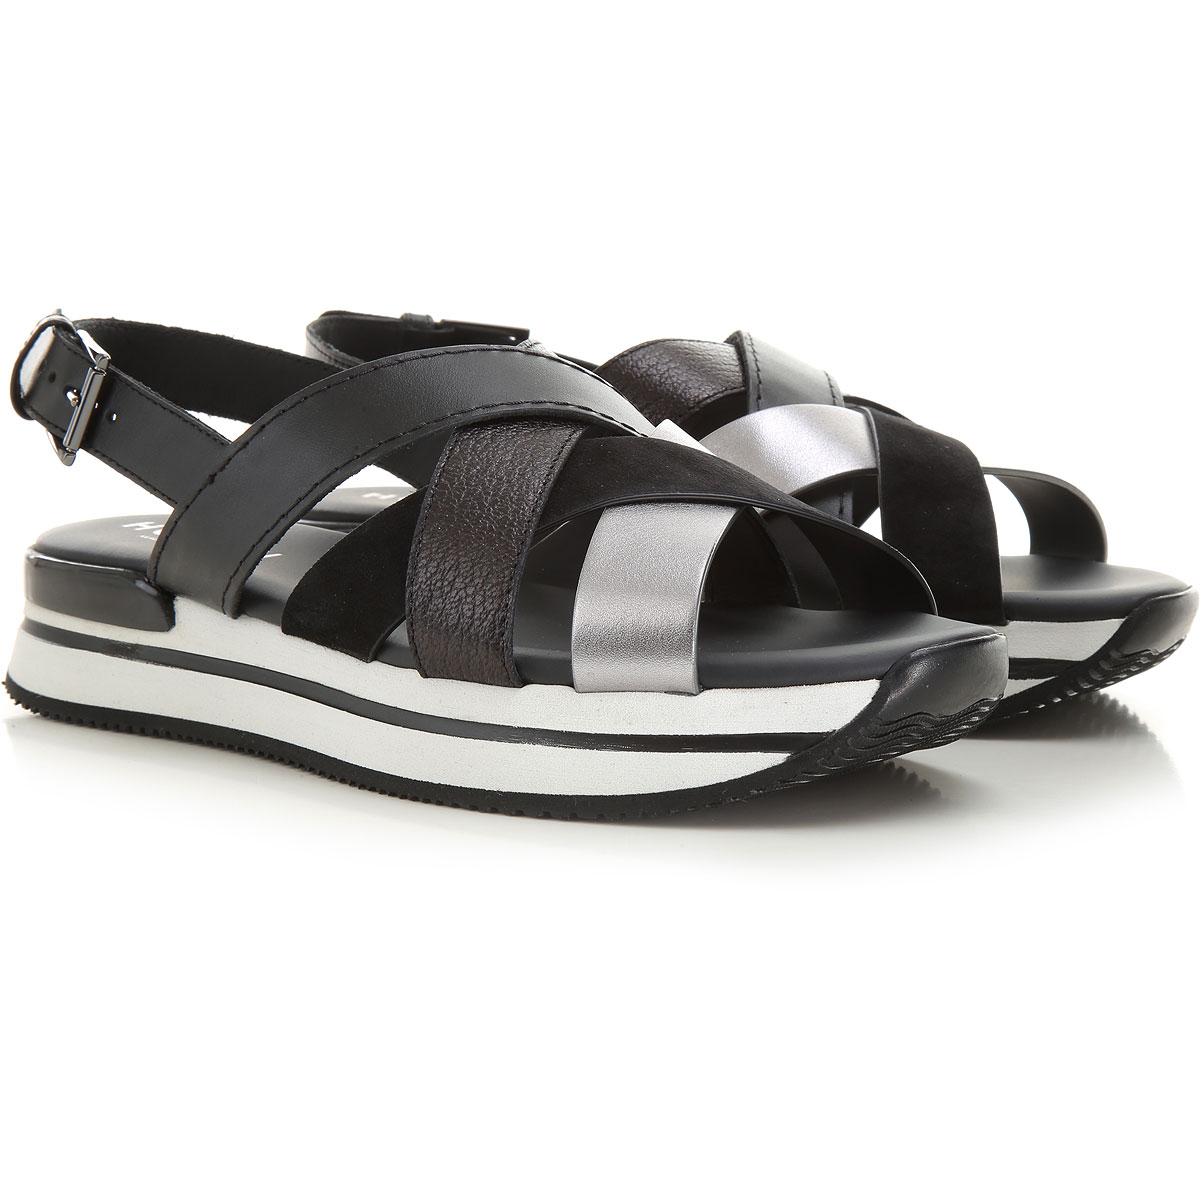 Hogan Sneakers for Women, Black, Leather, 2021, 10 5 5.5 6 6.5 7 8 ...